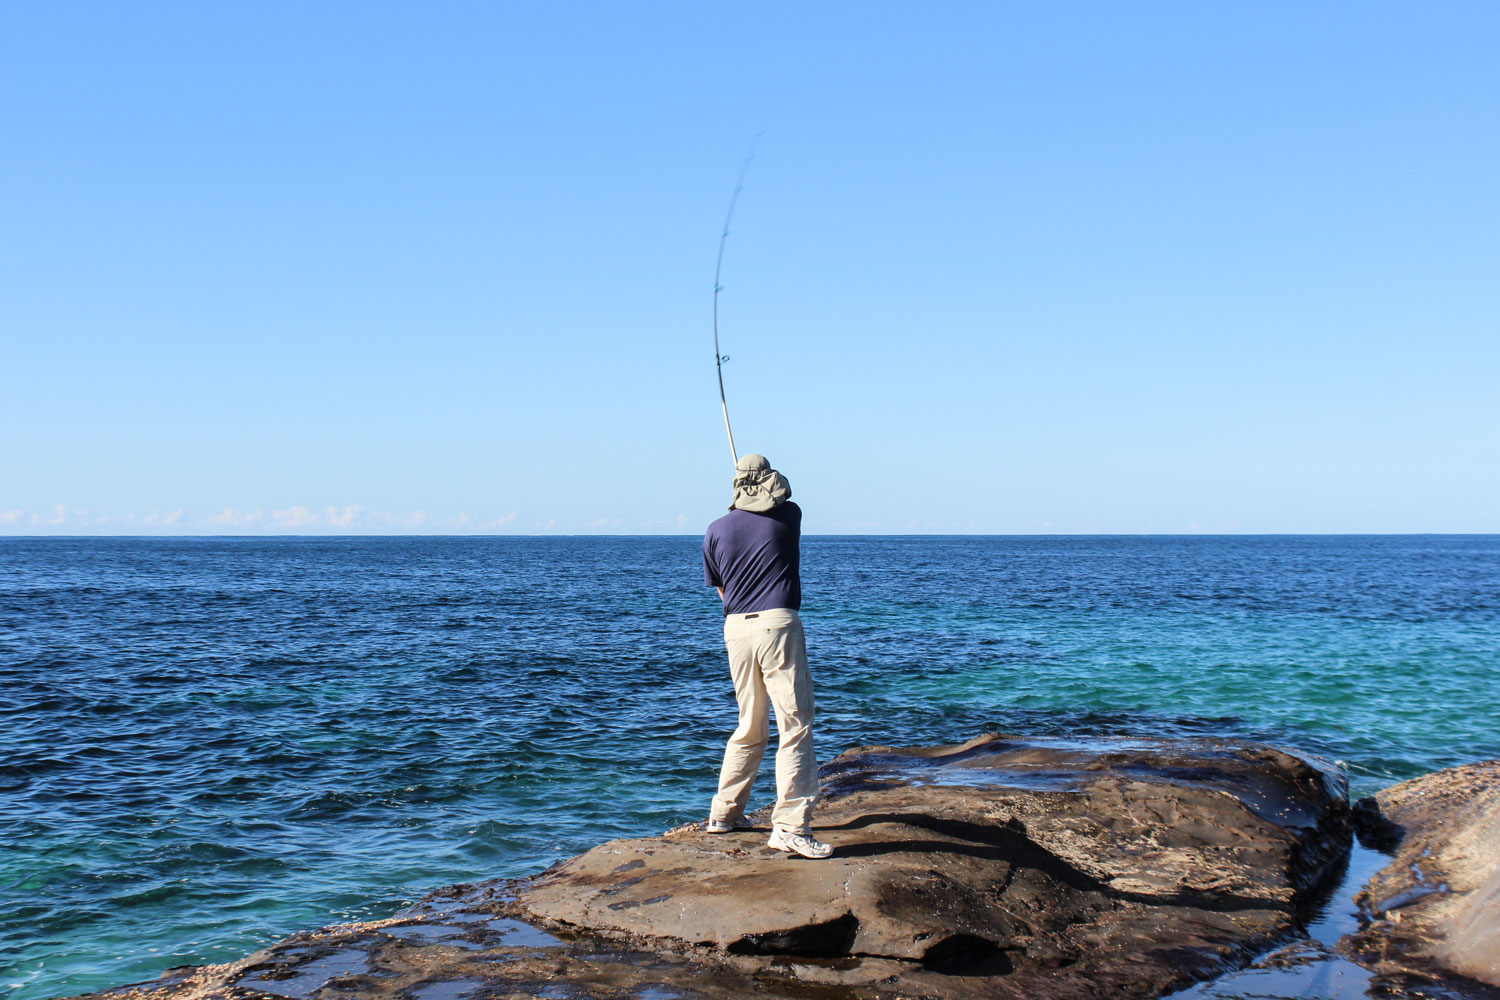 Fishing-on-Rocks-1.jpg